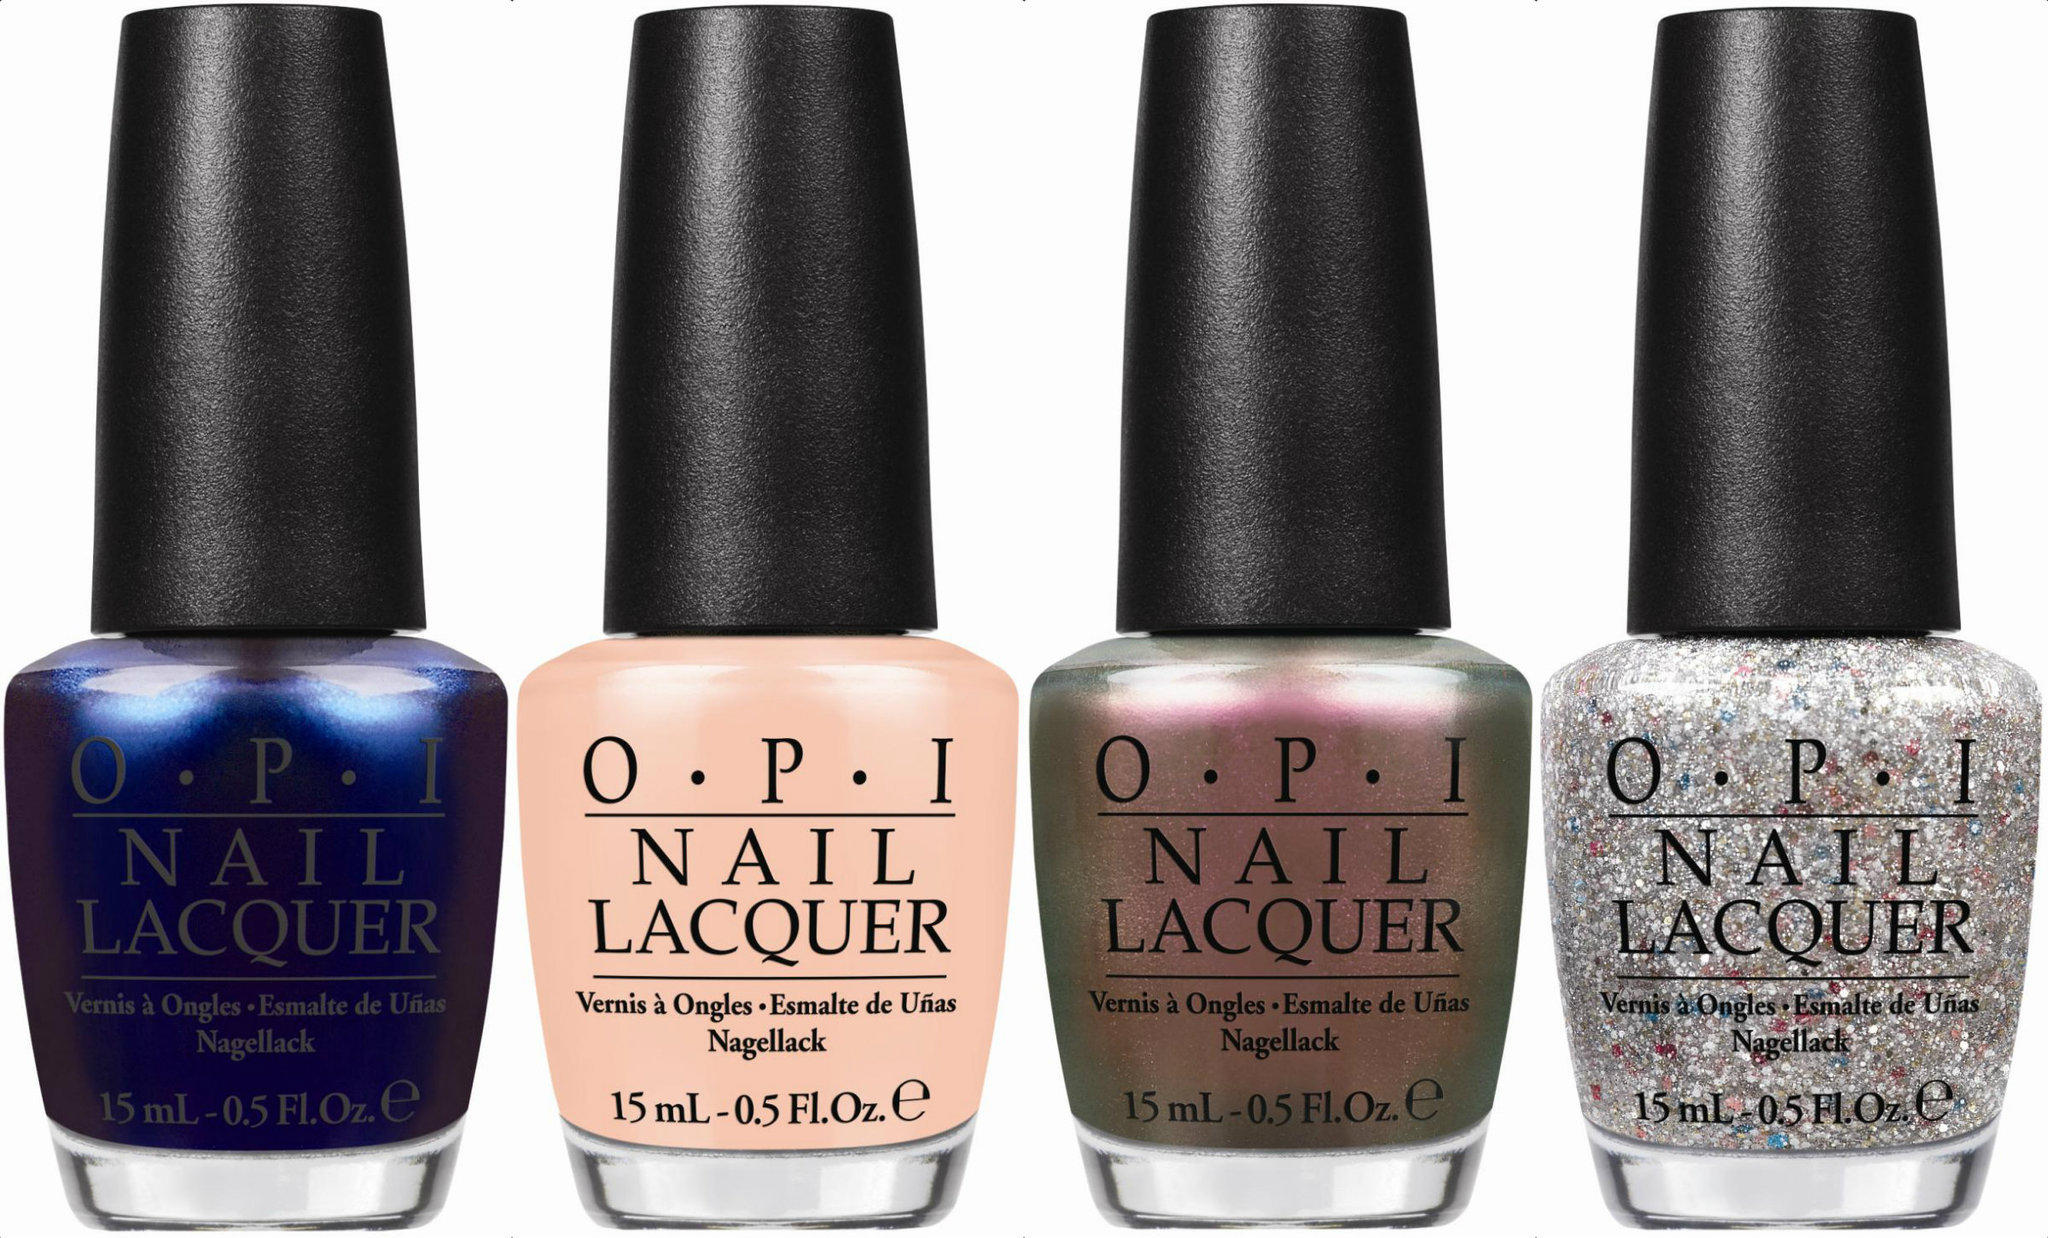 OPI, Disney launch \'Muppets Most Wanted\' nail lacquers - latimes